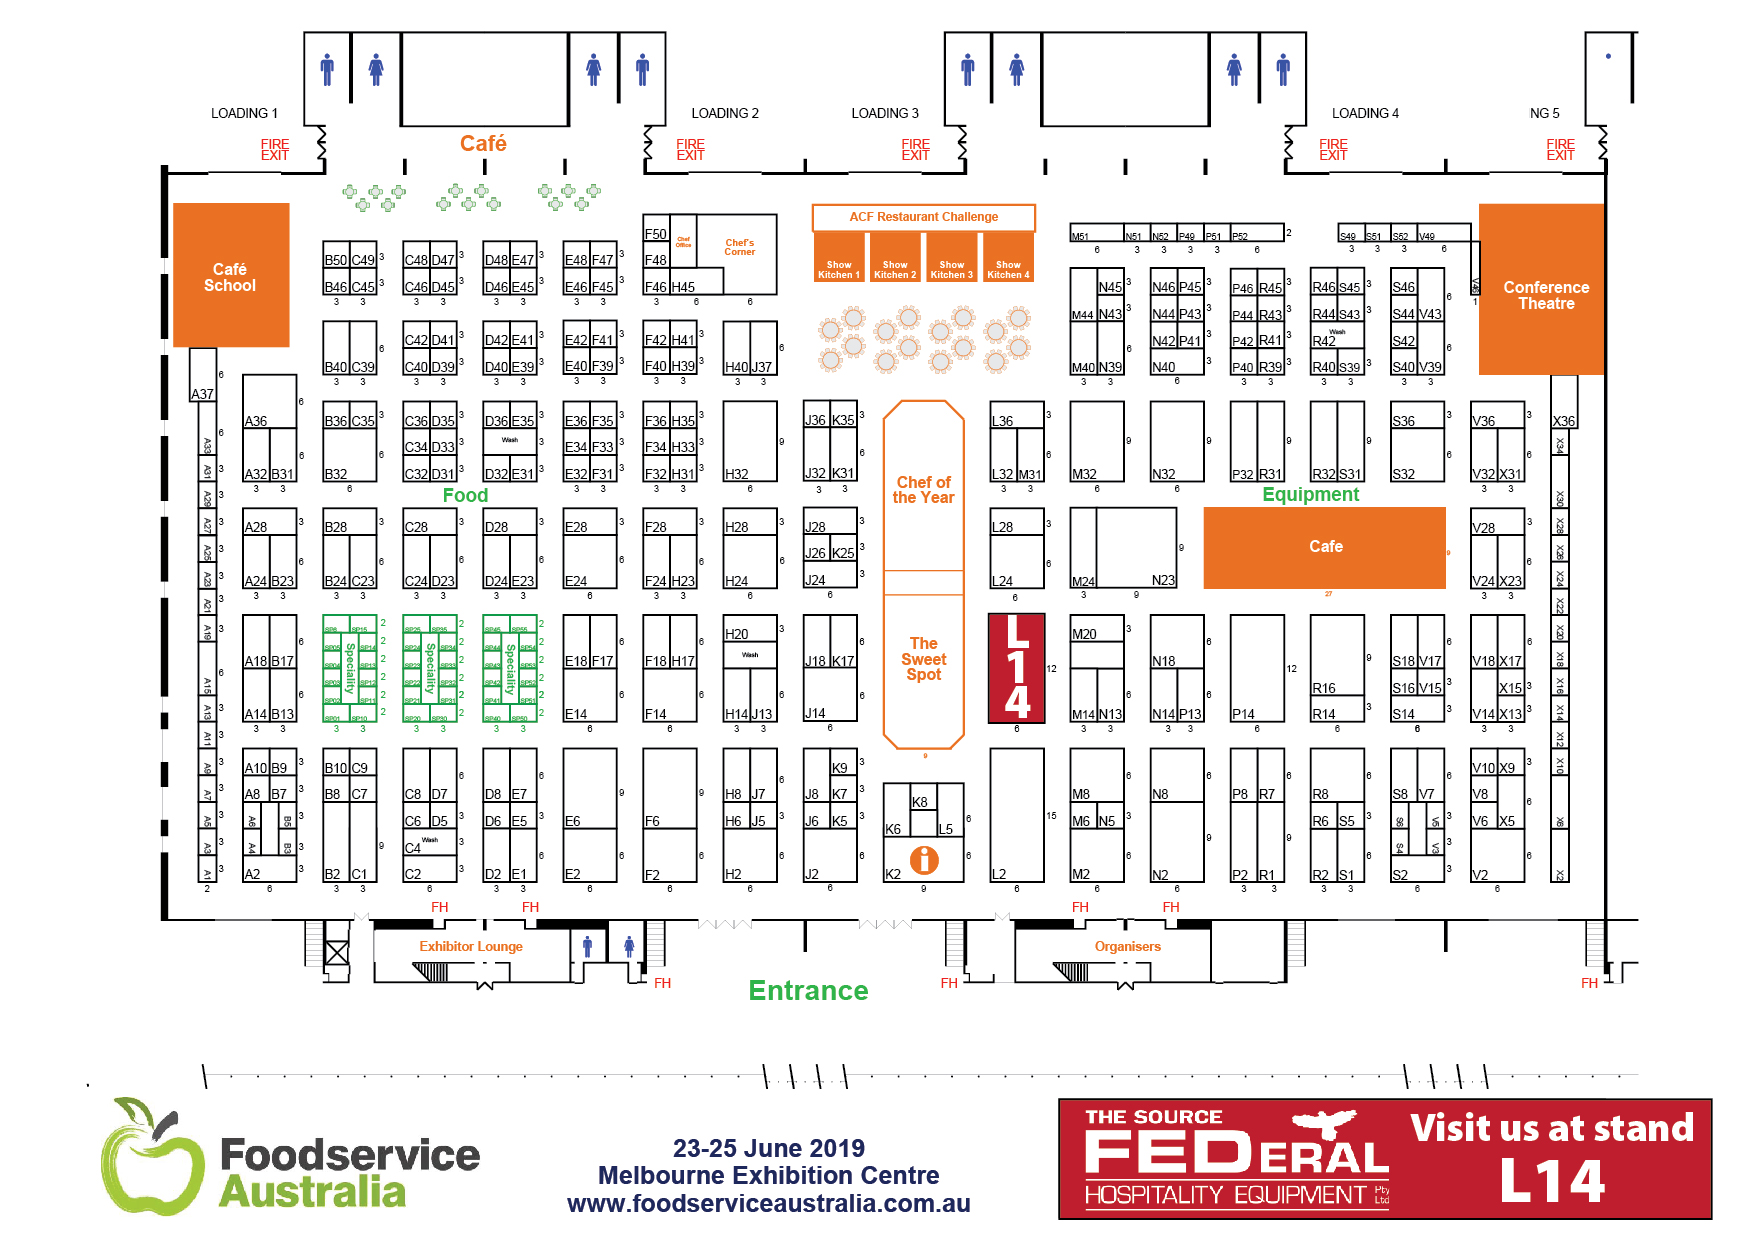 Foodservice show fed FED